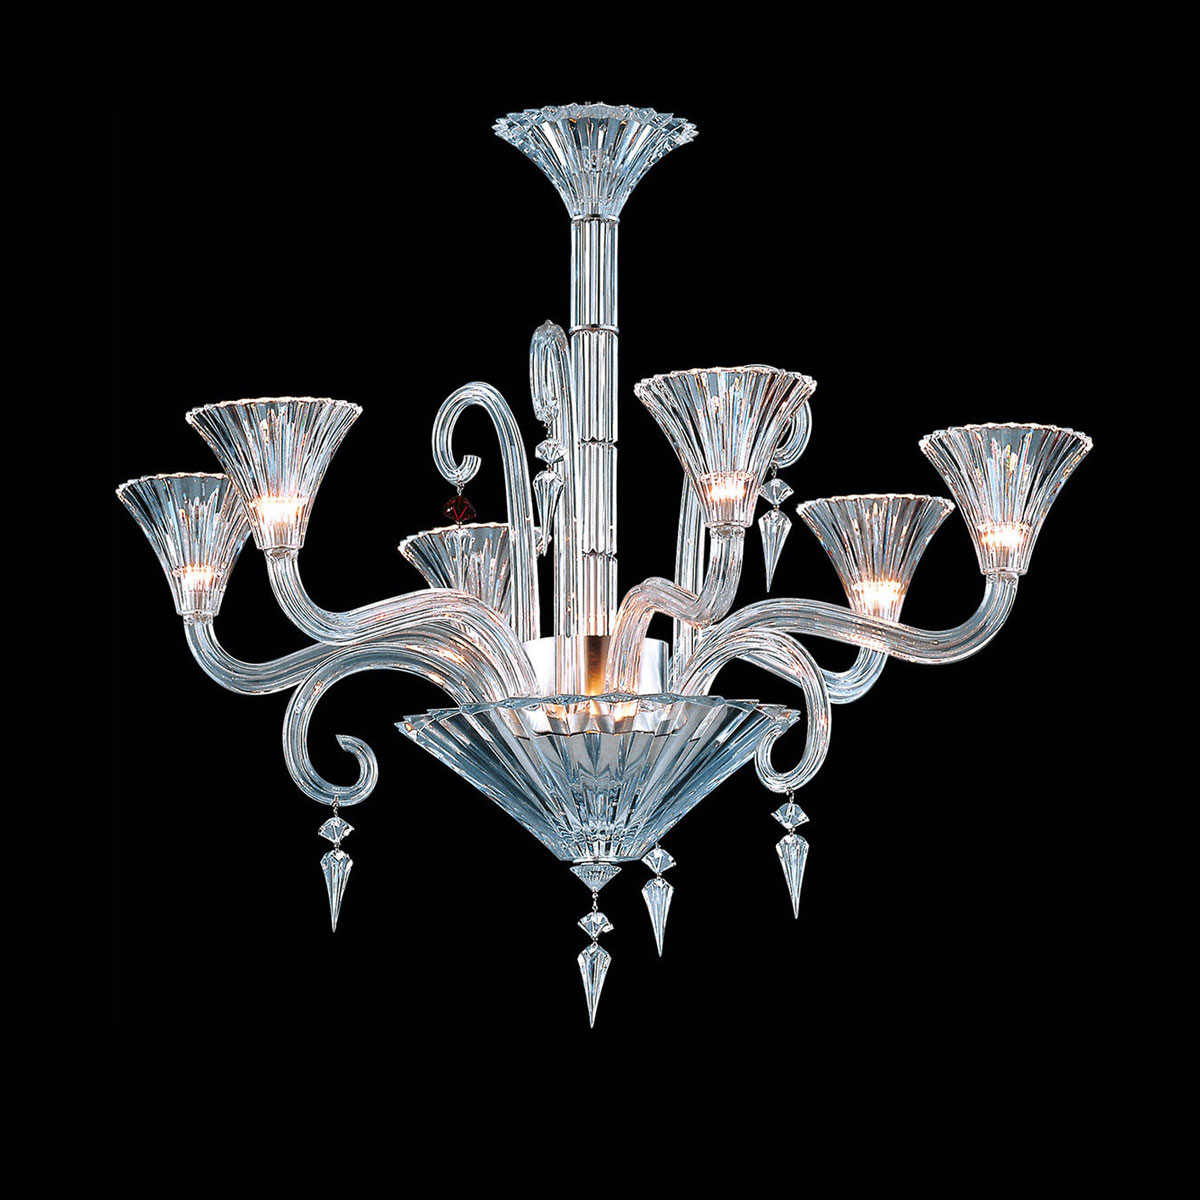 Baccarat Crystal, Mille Nuits 6 Light Crystal Chandelier, With Lighted Crystal Bowl For Hurricane